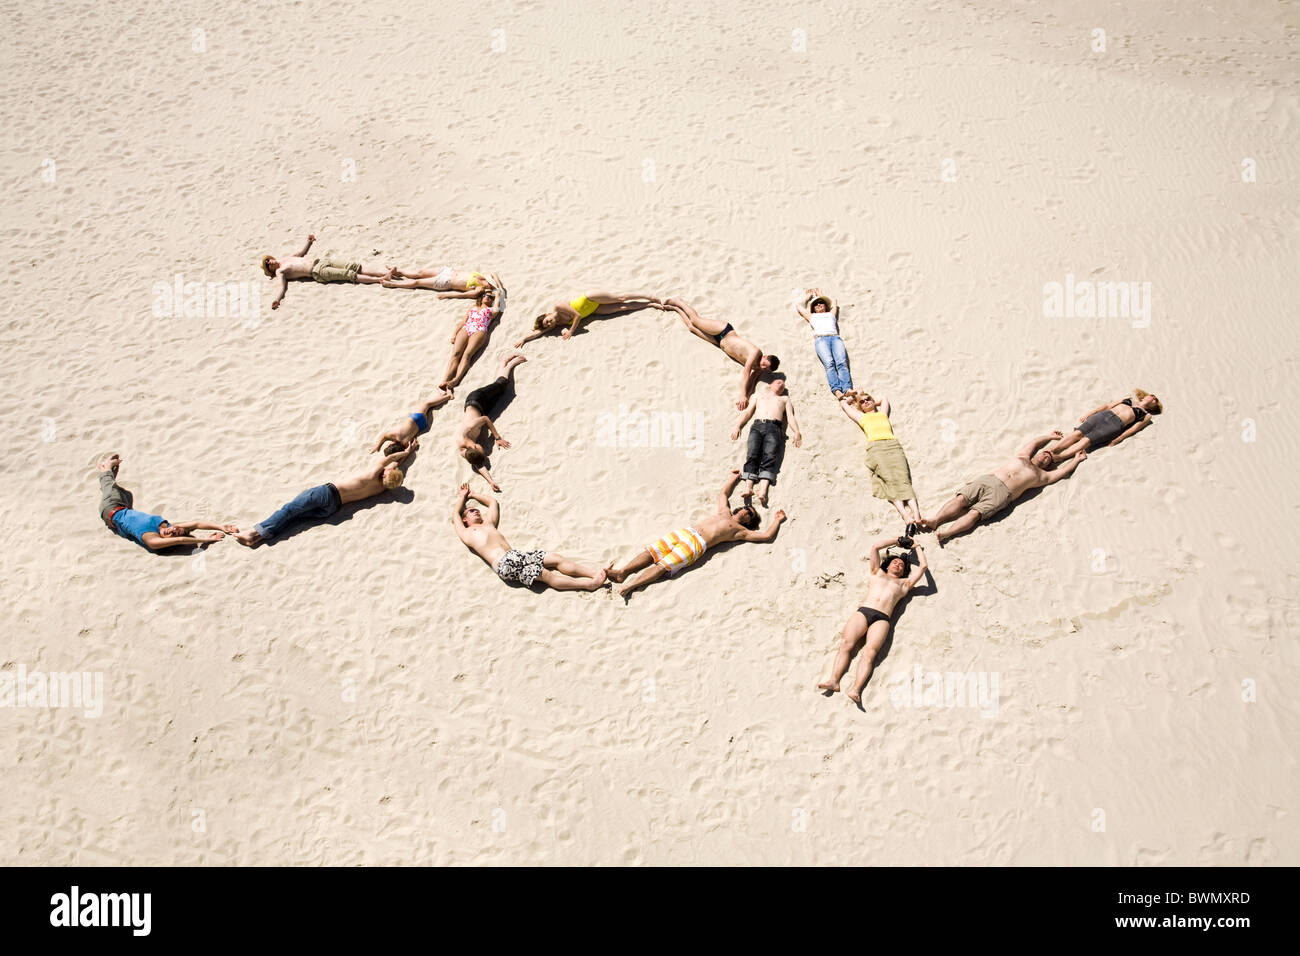 Image of word joy made up of young people resting on the sand - Stock Image